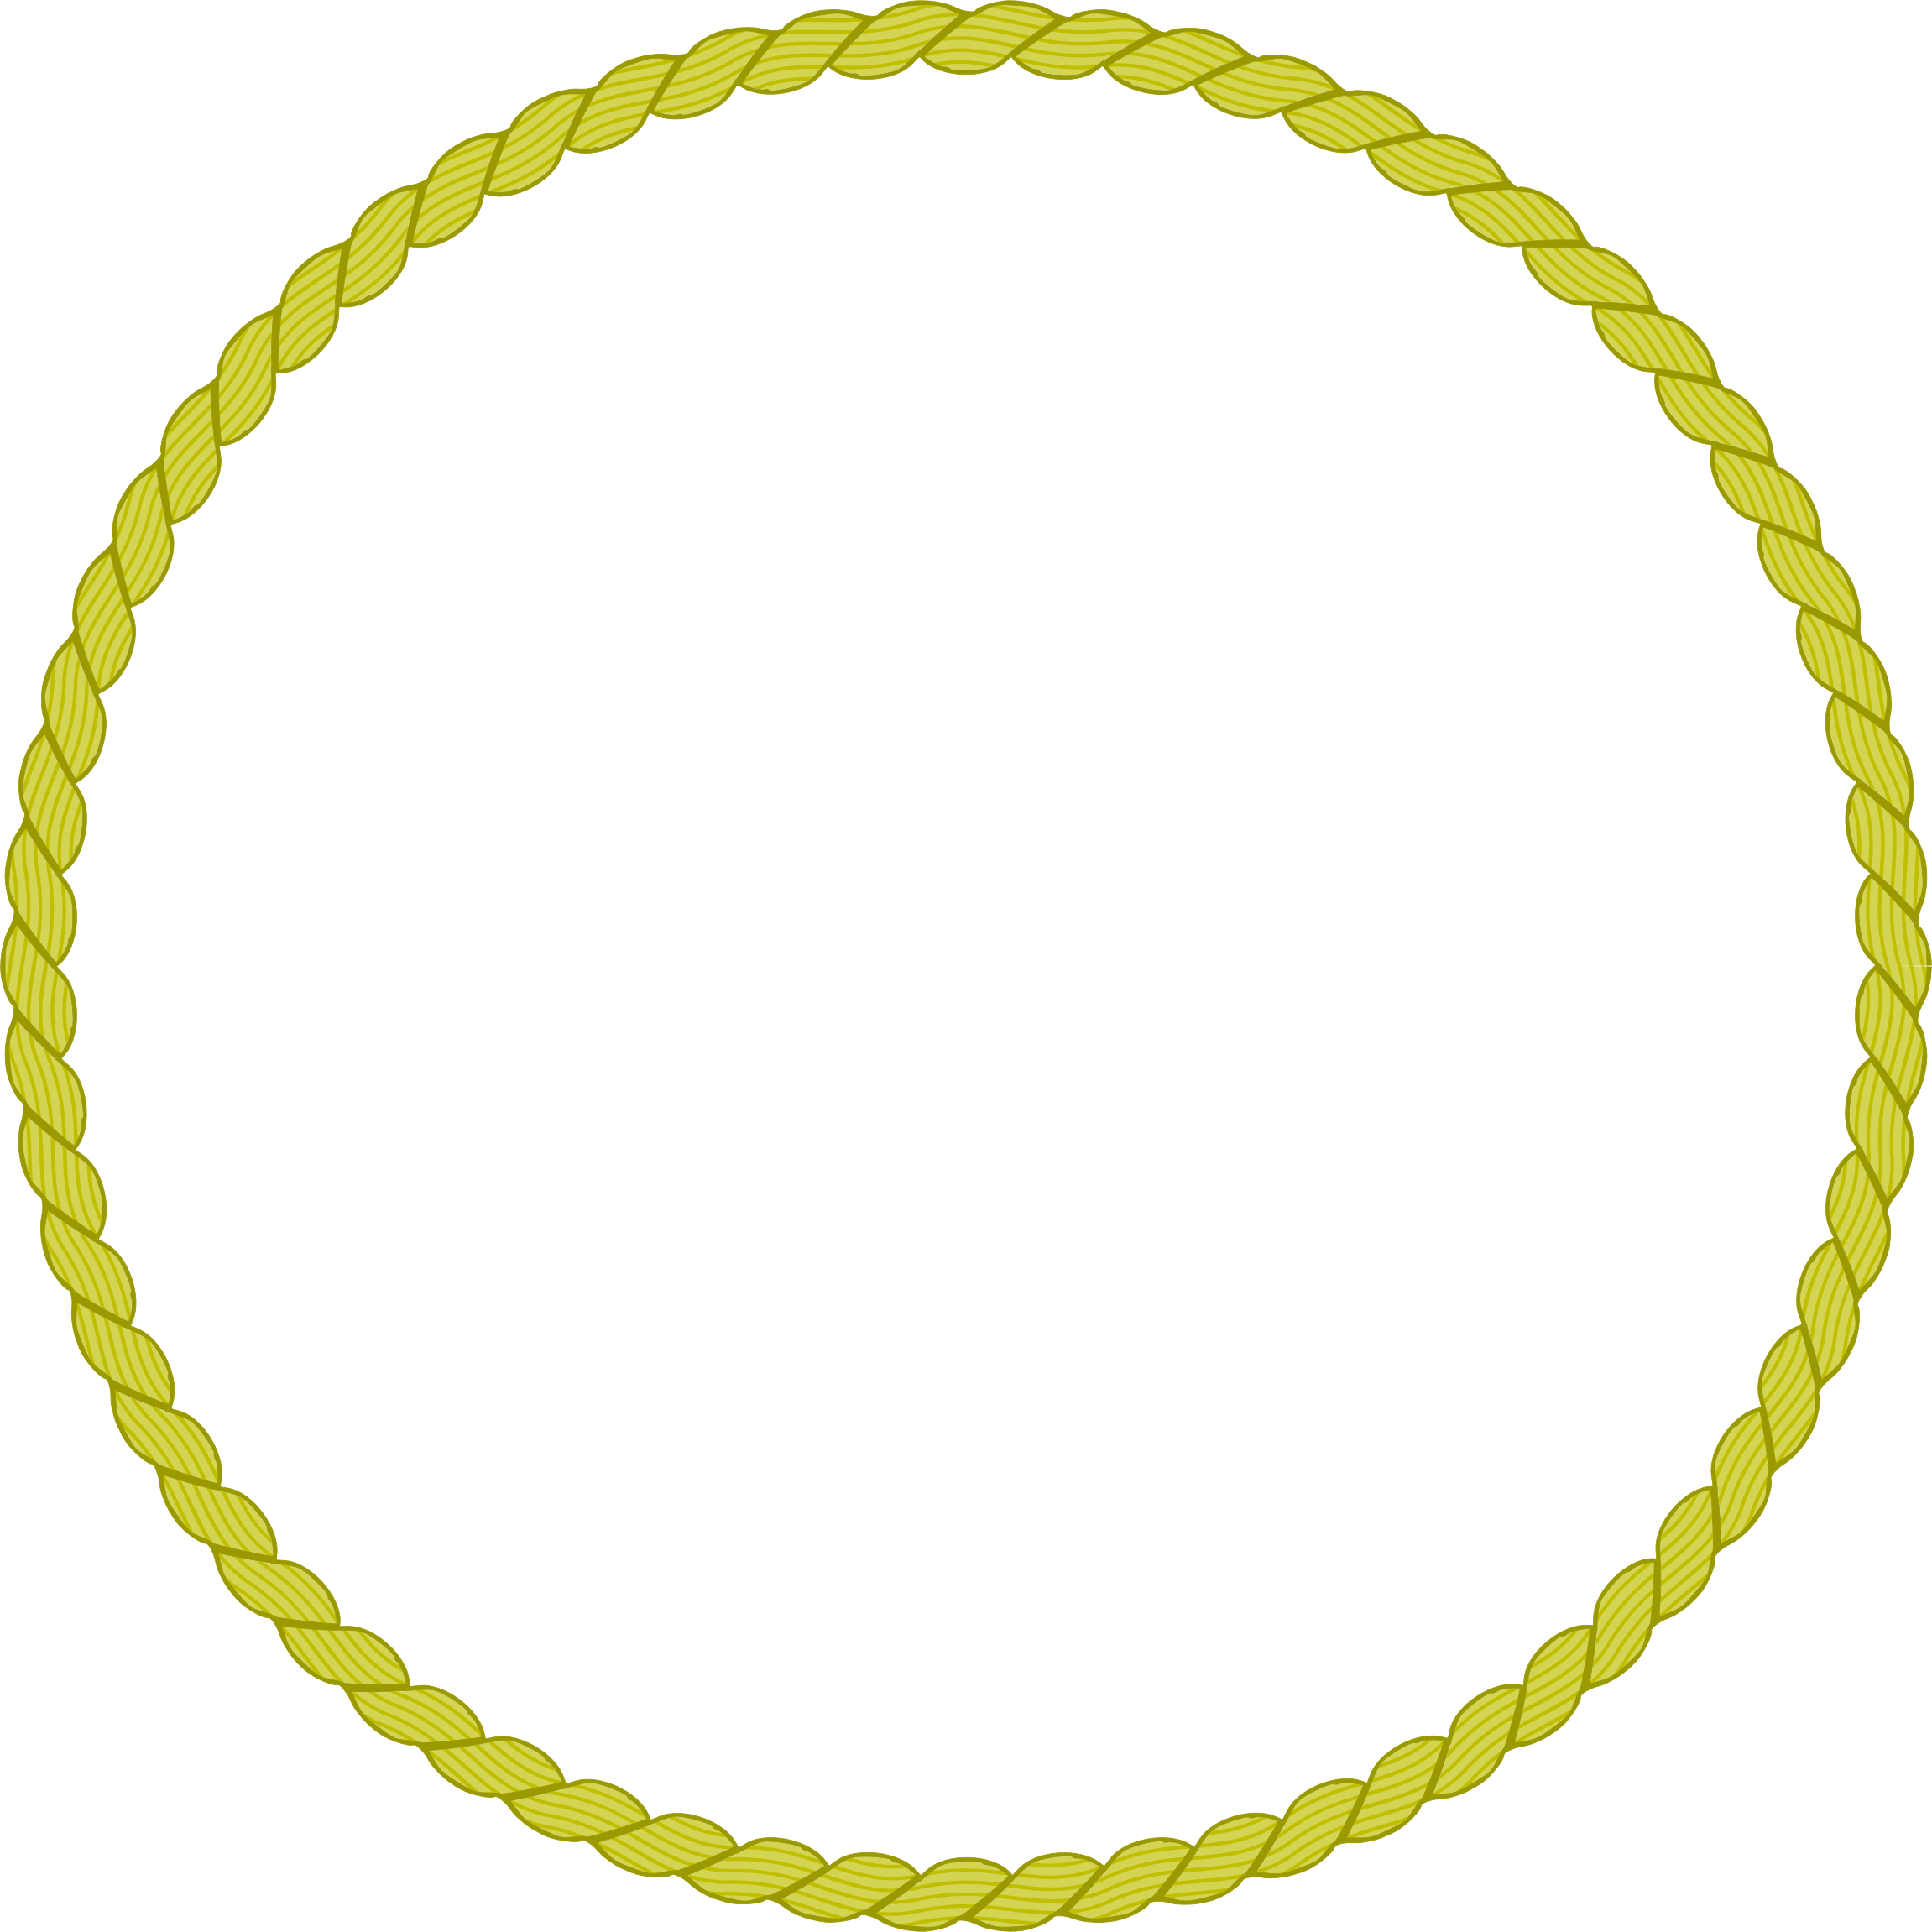 Round icons free and. Rope border png